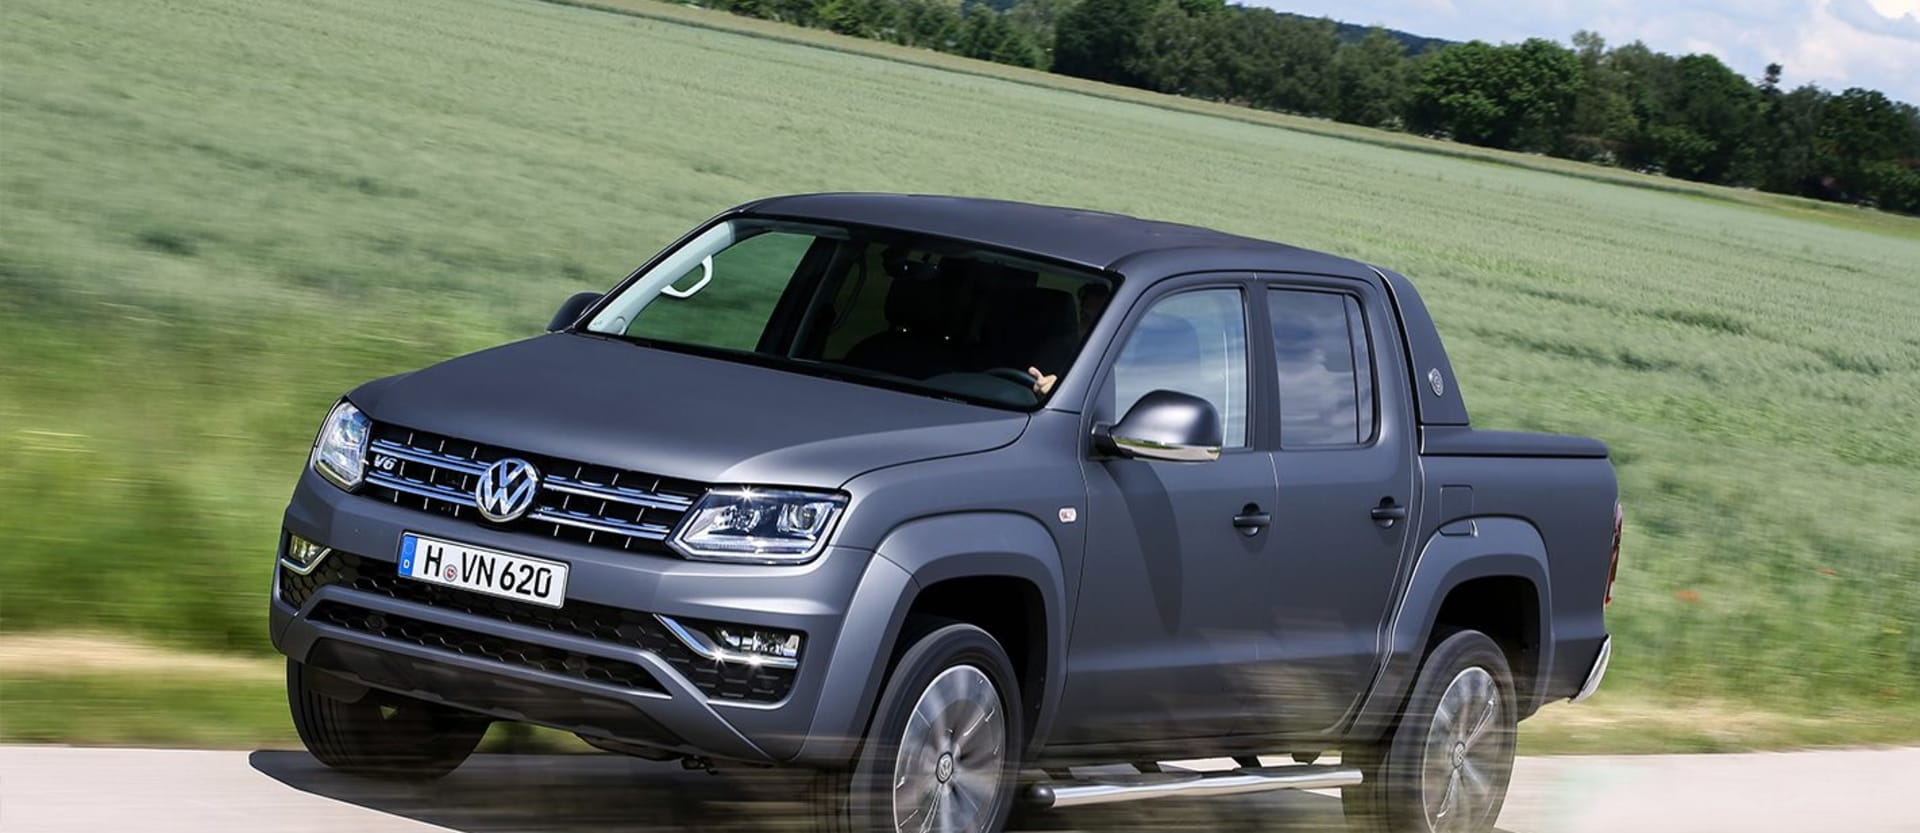 Volkswagen's most popular Amarok trade utes are its most expensive